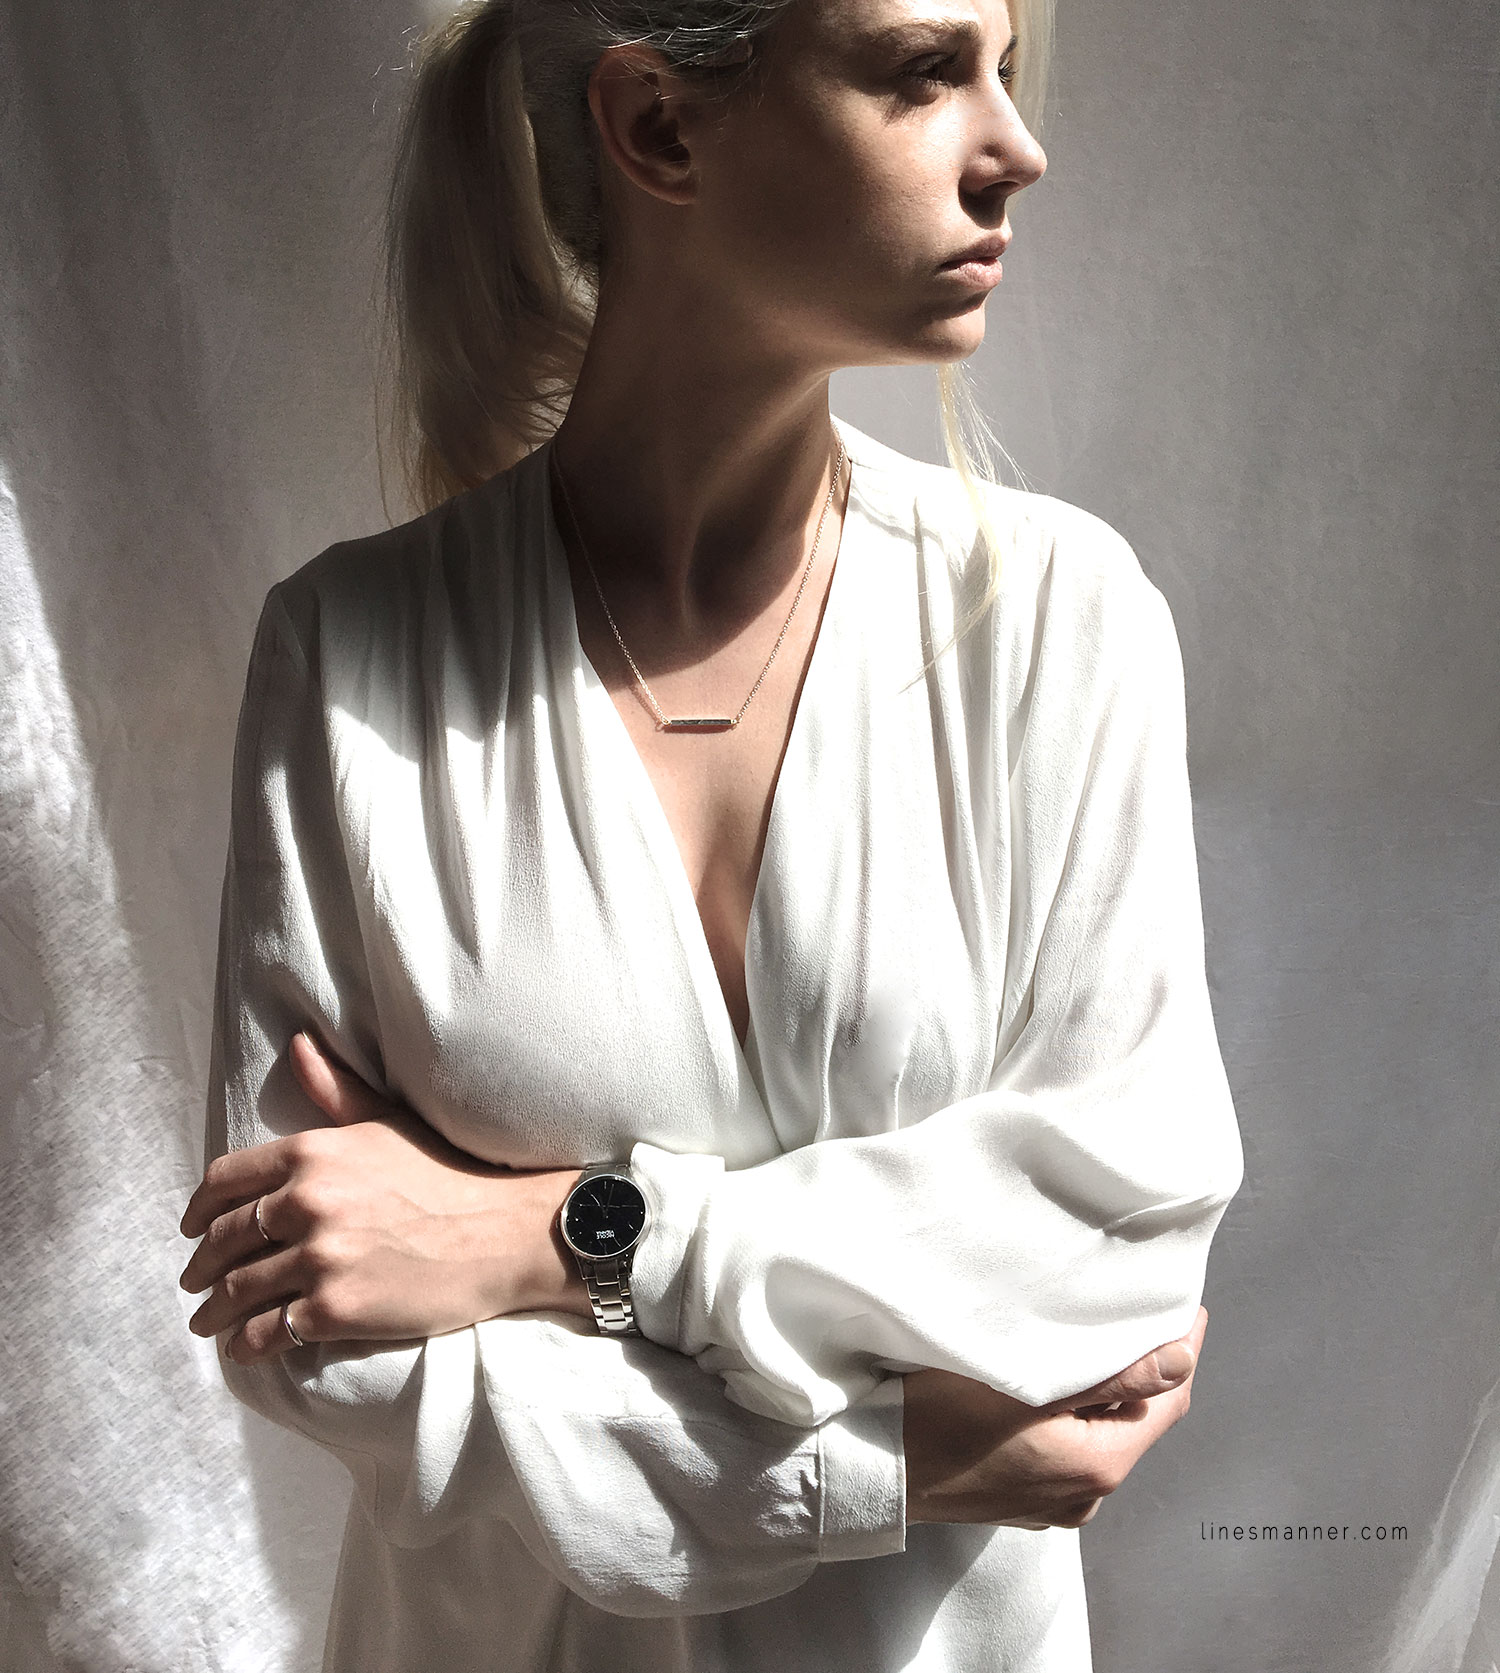 Lines-Manner-Bright-Whiteout-Essentials-Slouchy-Fresh-Clean-All_White-Details-Minimal-Outfit-Dress-Thridorm-A_Weathered_Penny_Nicole_Vienna-Simplicity-3